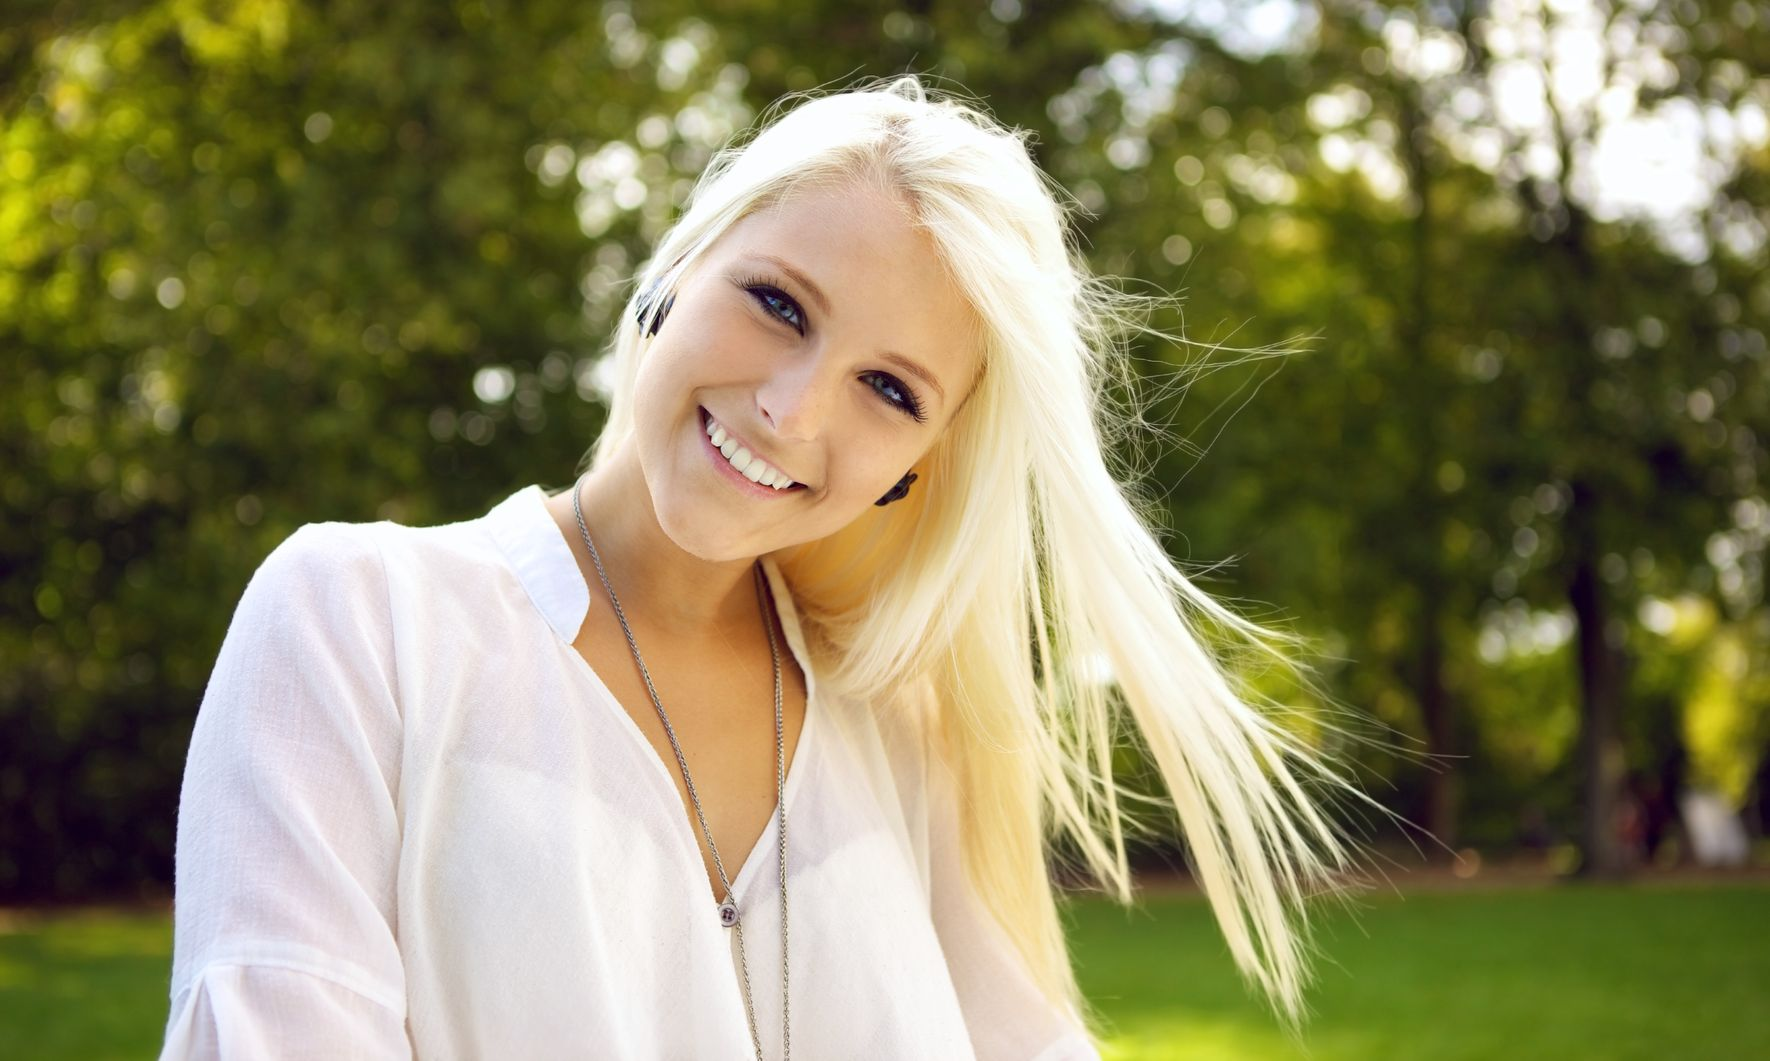 Revision Rhinoplasty Specialist: The 5 Key Traits You Need to Look For